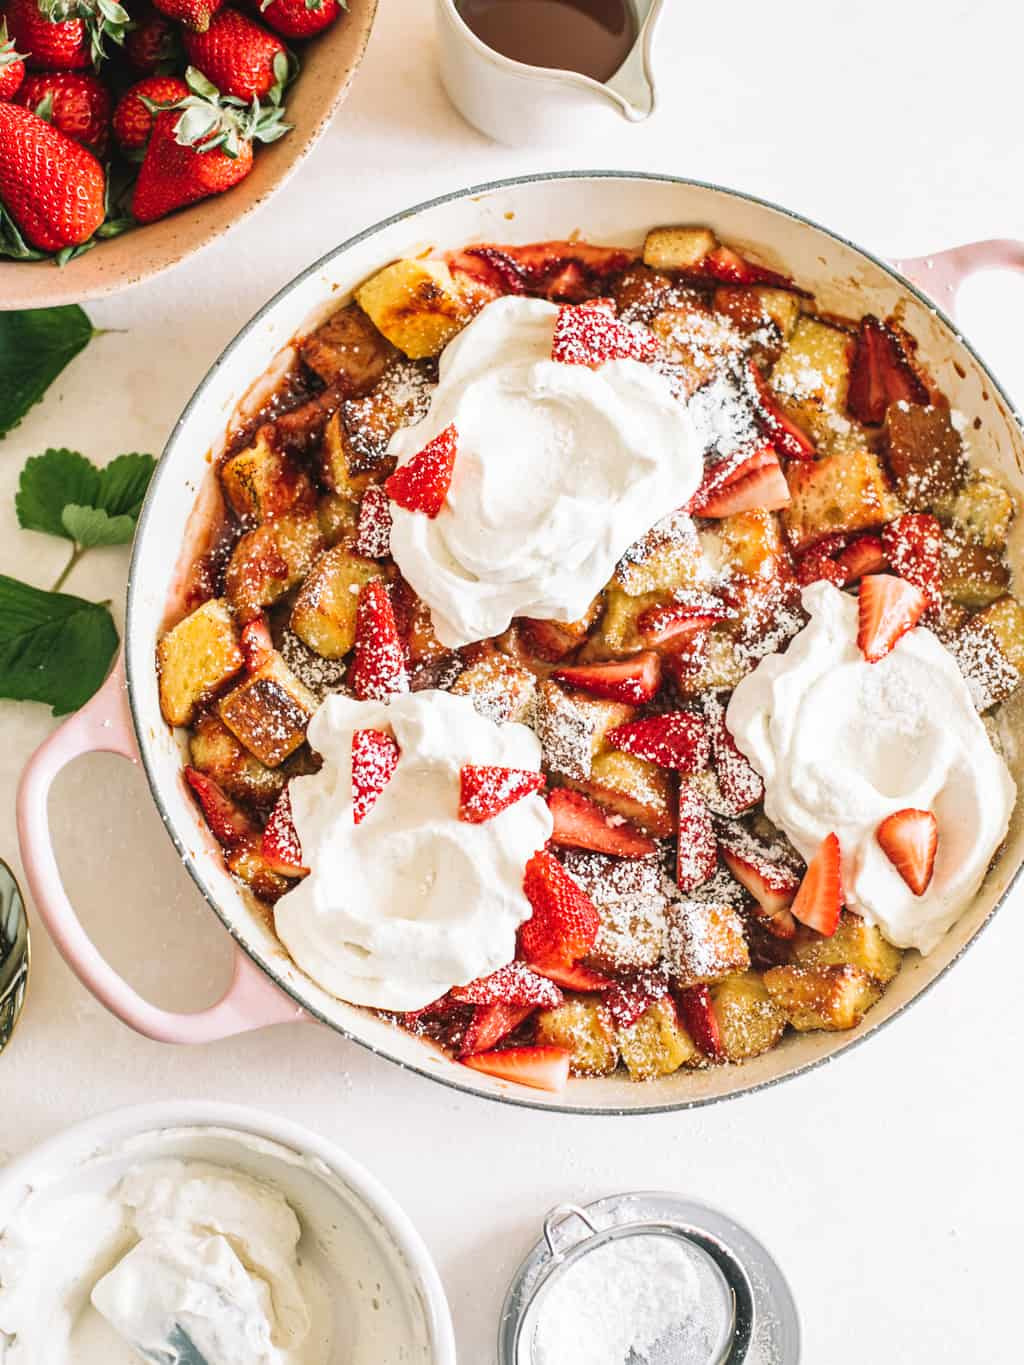 Strawberry and Cream Overnight French Toast in a pink casserole dish